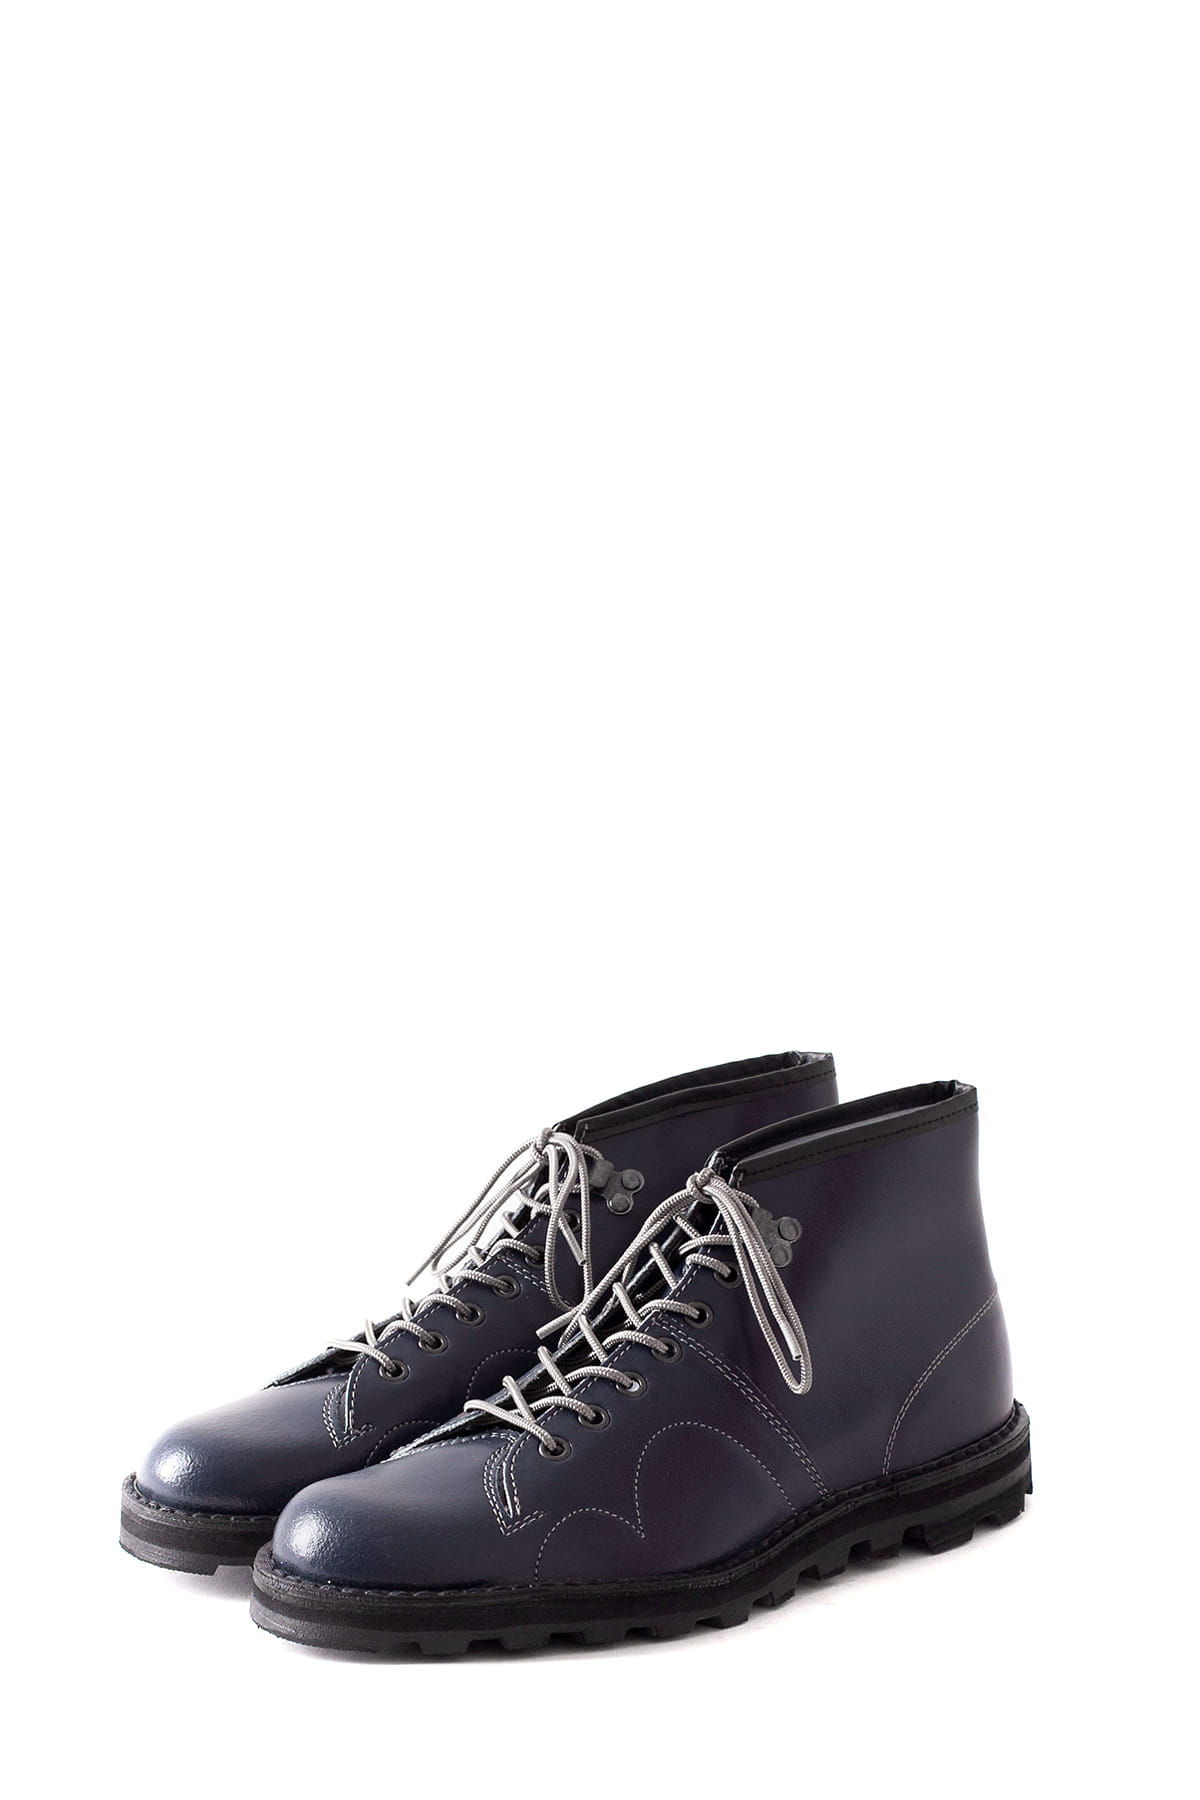 REPRODUCTION OF FOUND : Czecho Slovakia Military Boots 4100L (Navy)